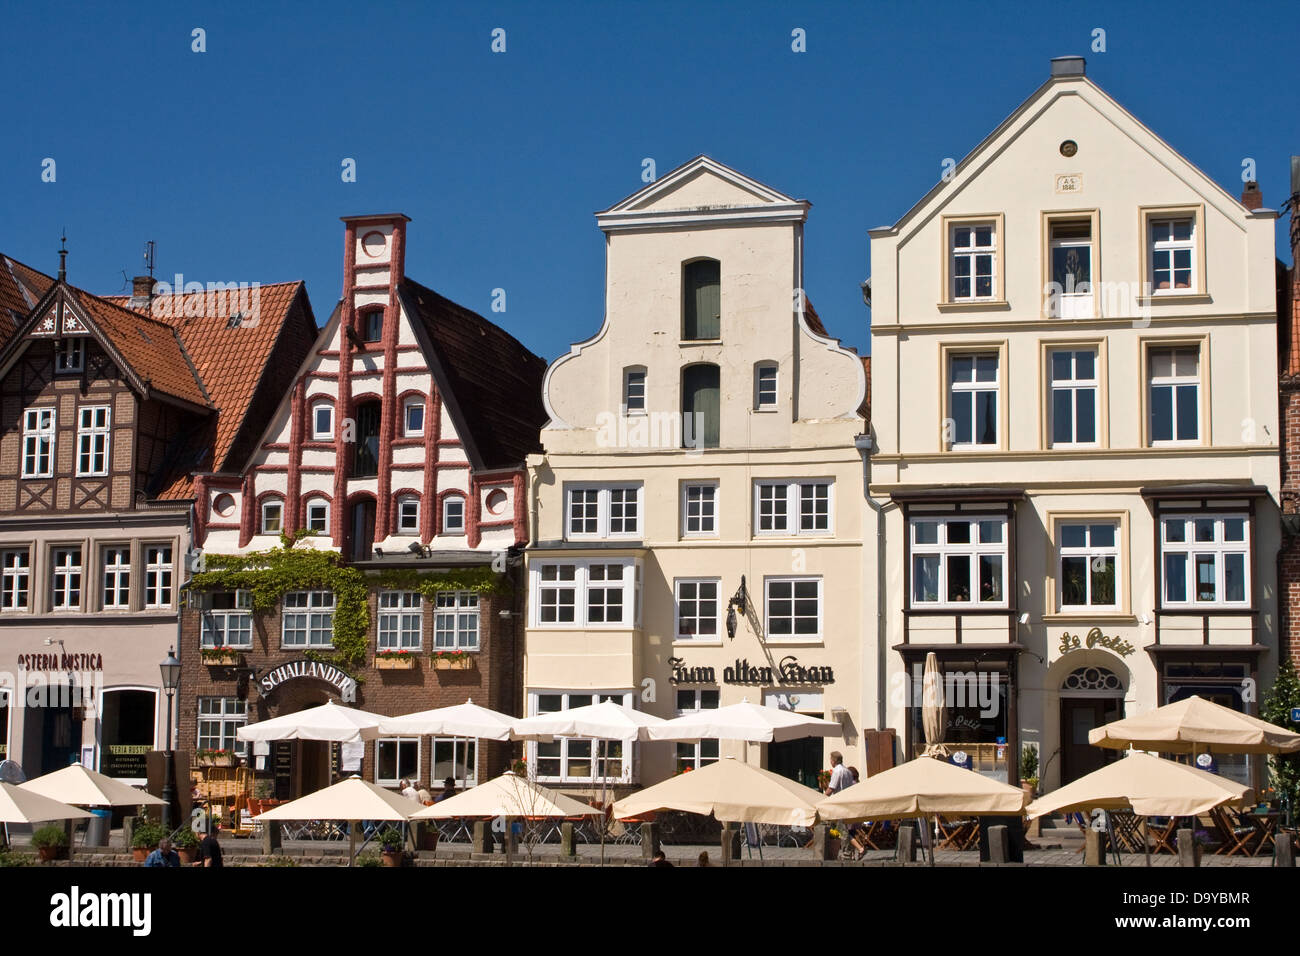 Europe, Germany, Lower Saxony, Lueneburg, Am Stintmarkt - Stock Image